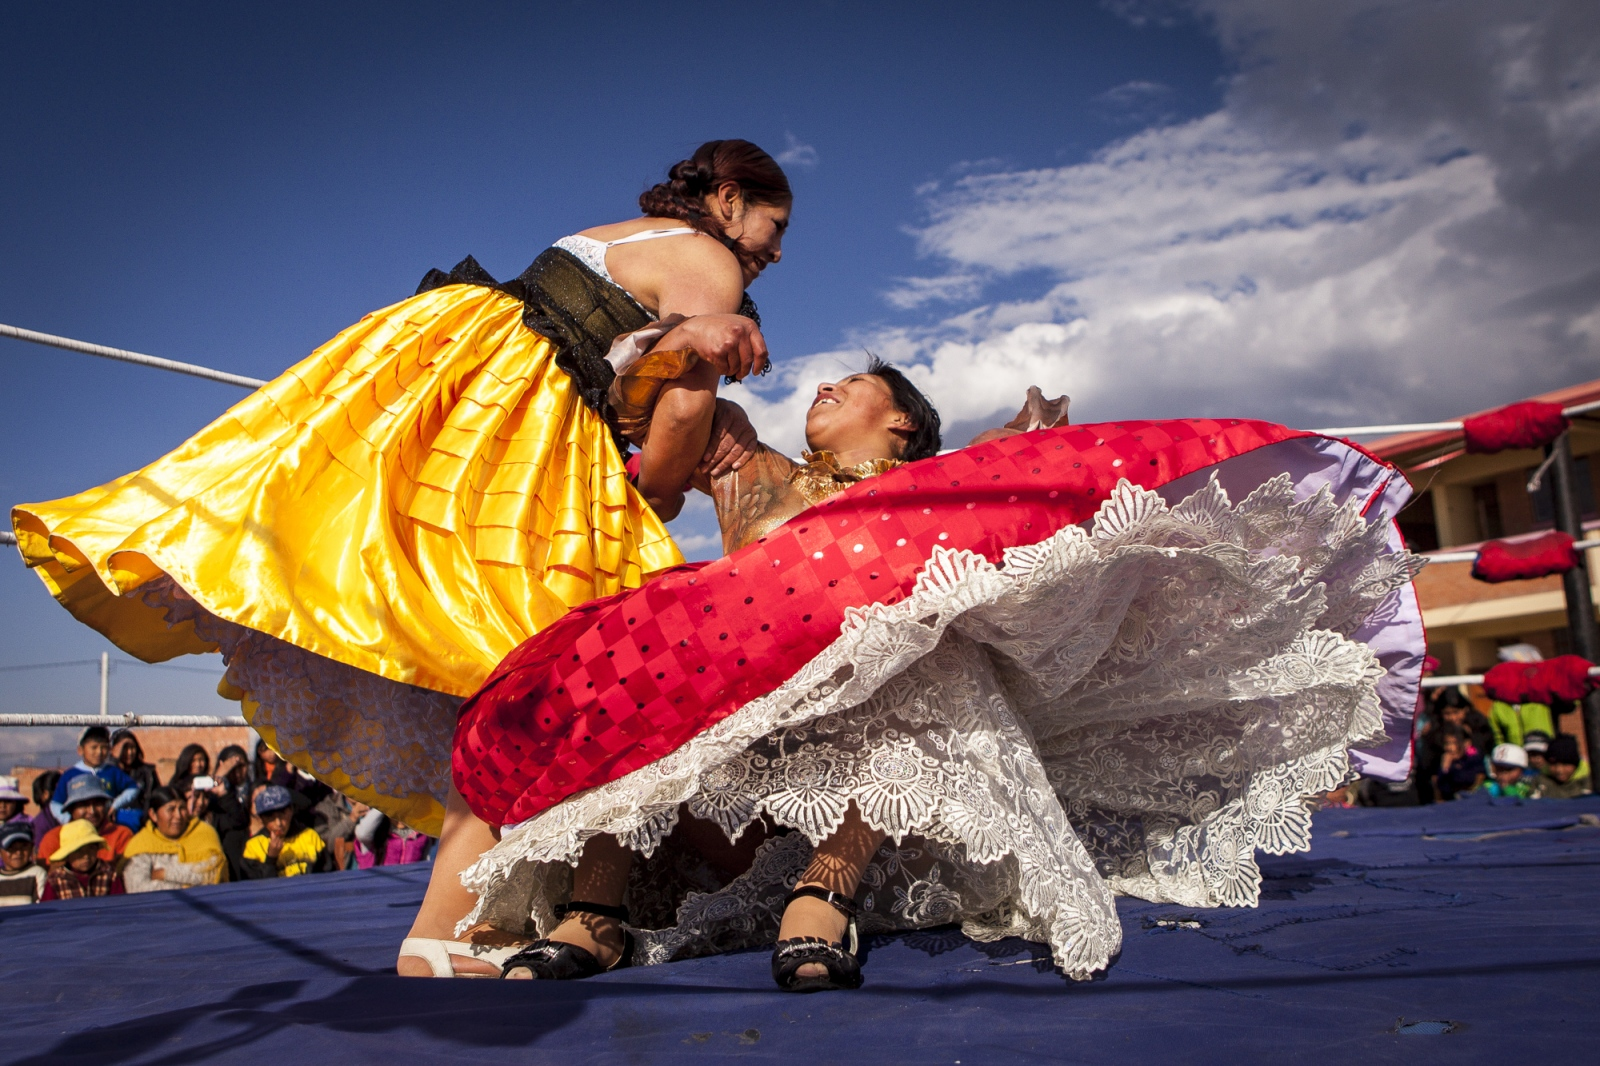 Reyna Torres grabs Silvina La Poderosa on a rotation movement during an exhibition fight in Senkata, El Alto. The Wrestling Cholitas fight every Sunday on the 12th October Complex in El Alto. At times they do exhibition fights in other parts of Bolivia to promote the sport.